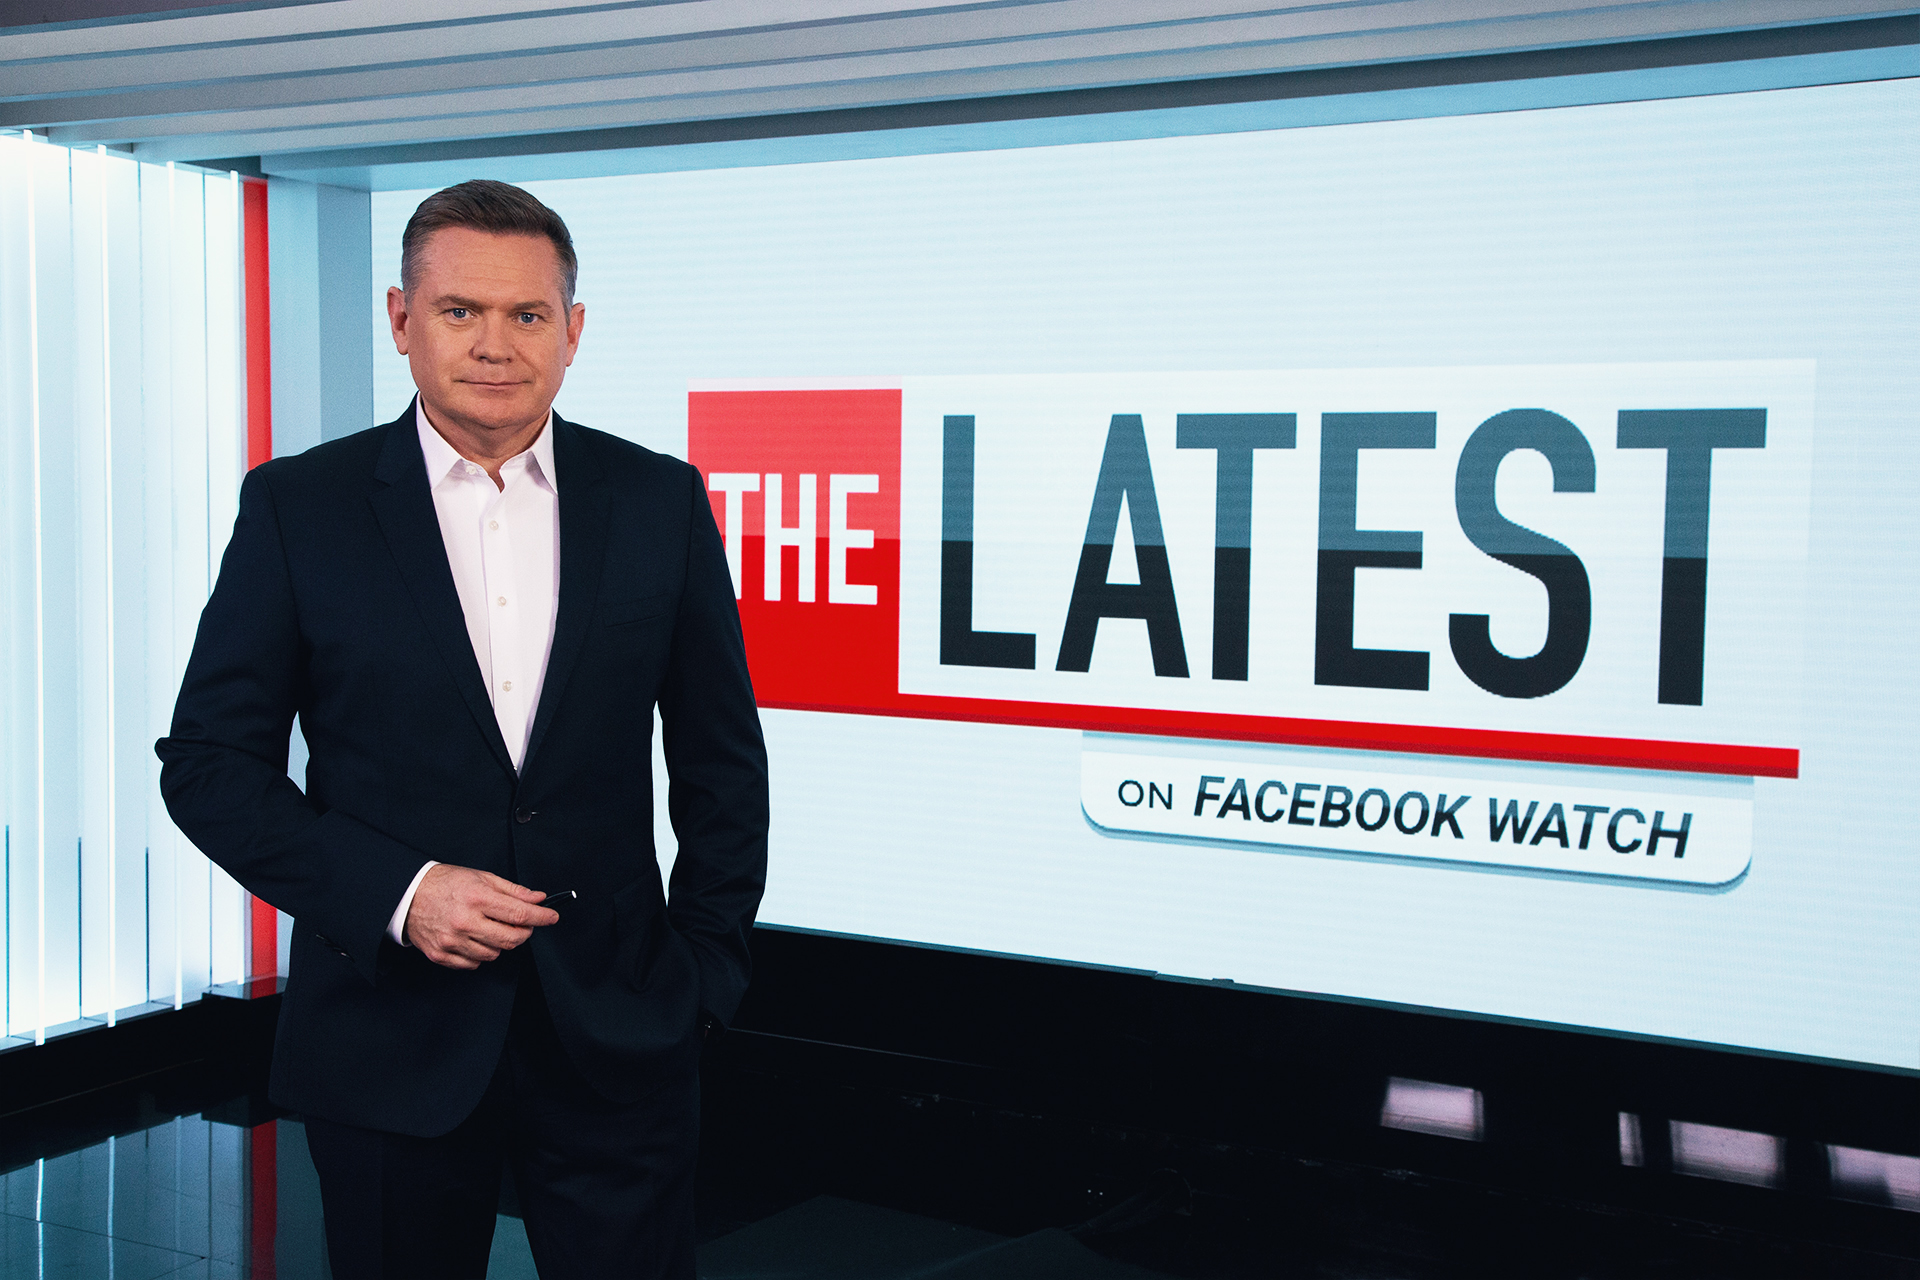 Michael Usher will present The Latest on Facebook Watch  image - SEVEN